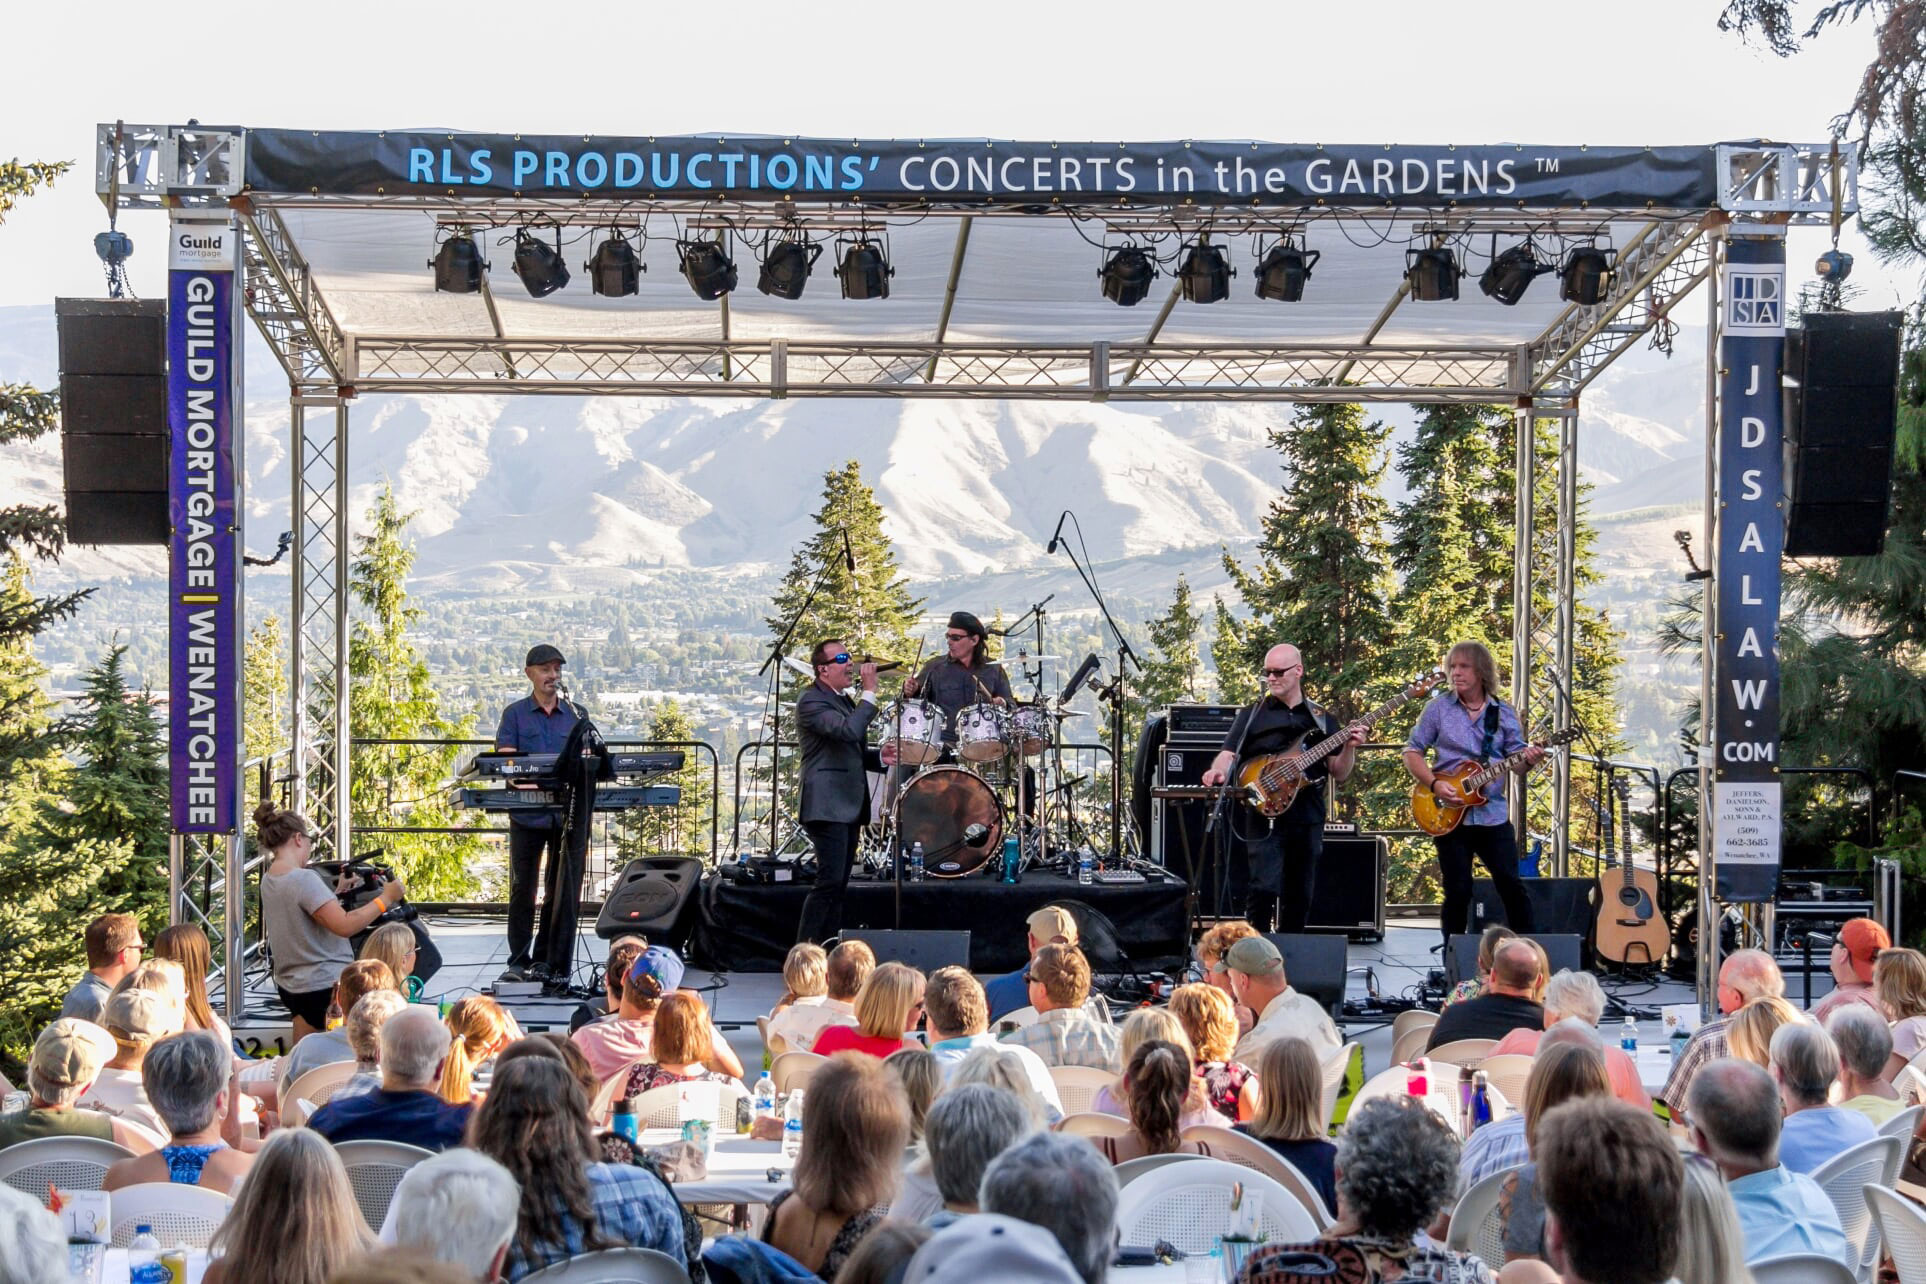 2019 RLS Productions' Concerts in the Gardens™